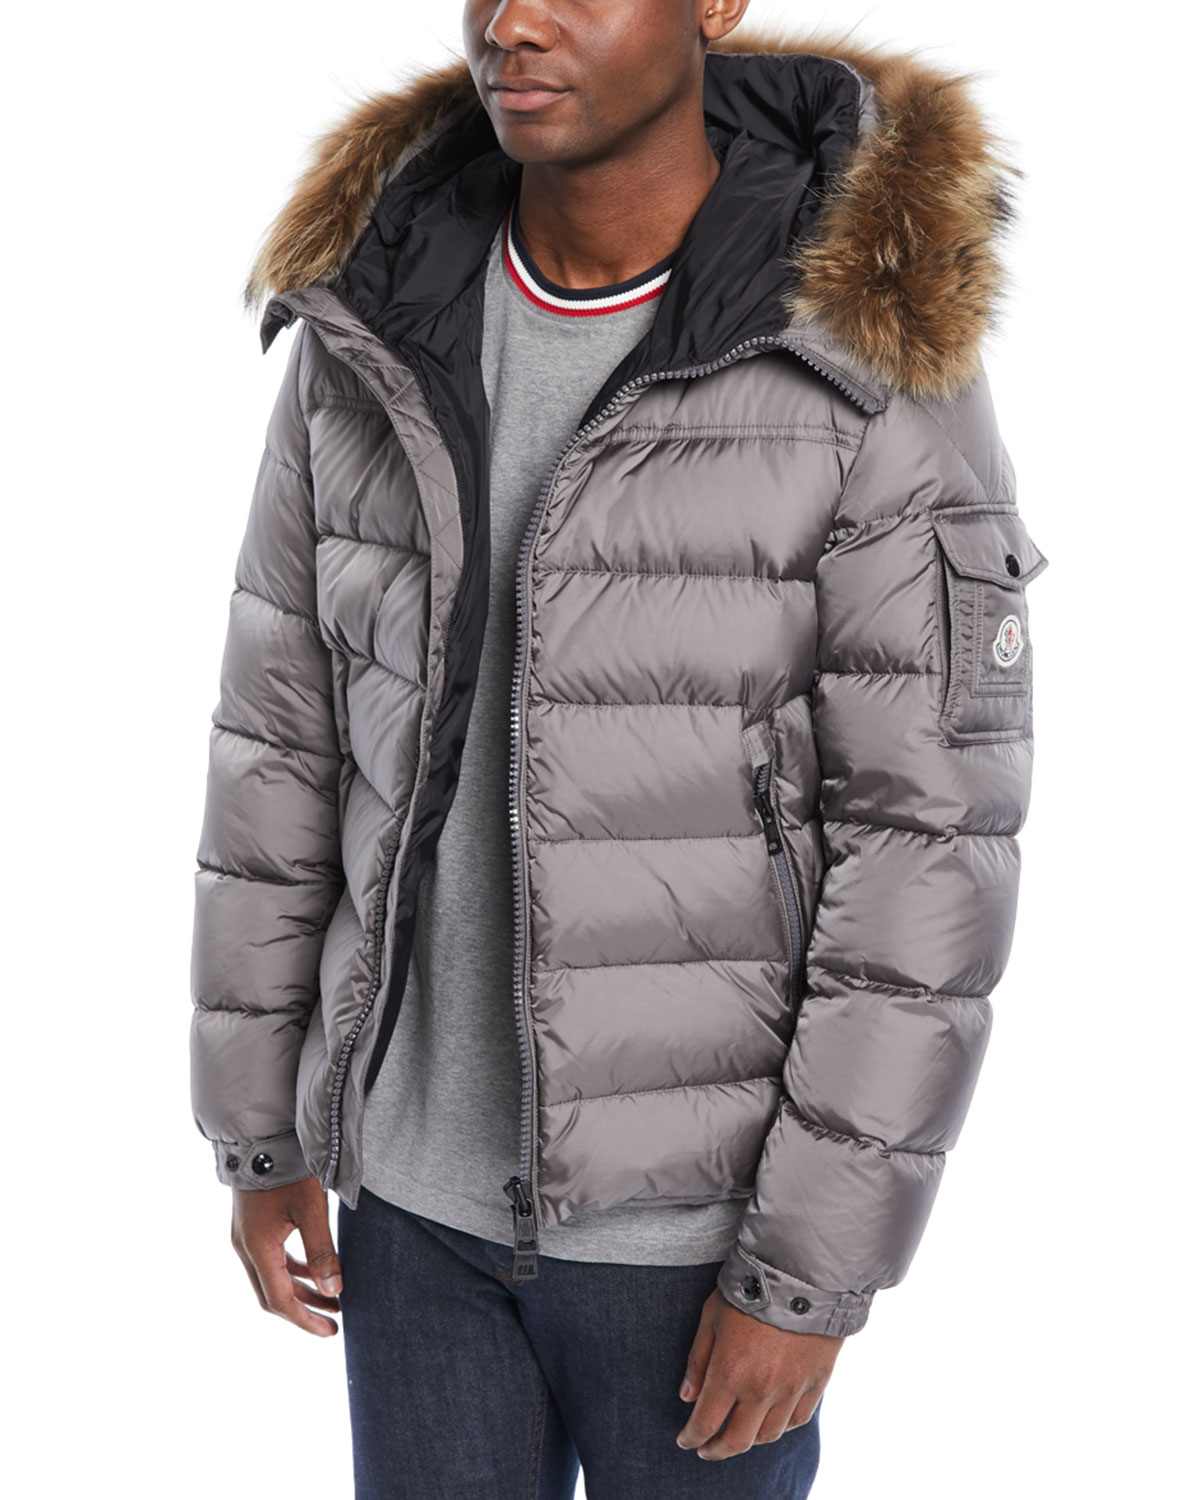 d4eaea034 Moncler Men s Marque Fur-Trim Puffer Jacket